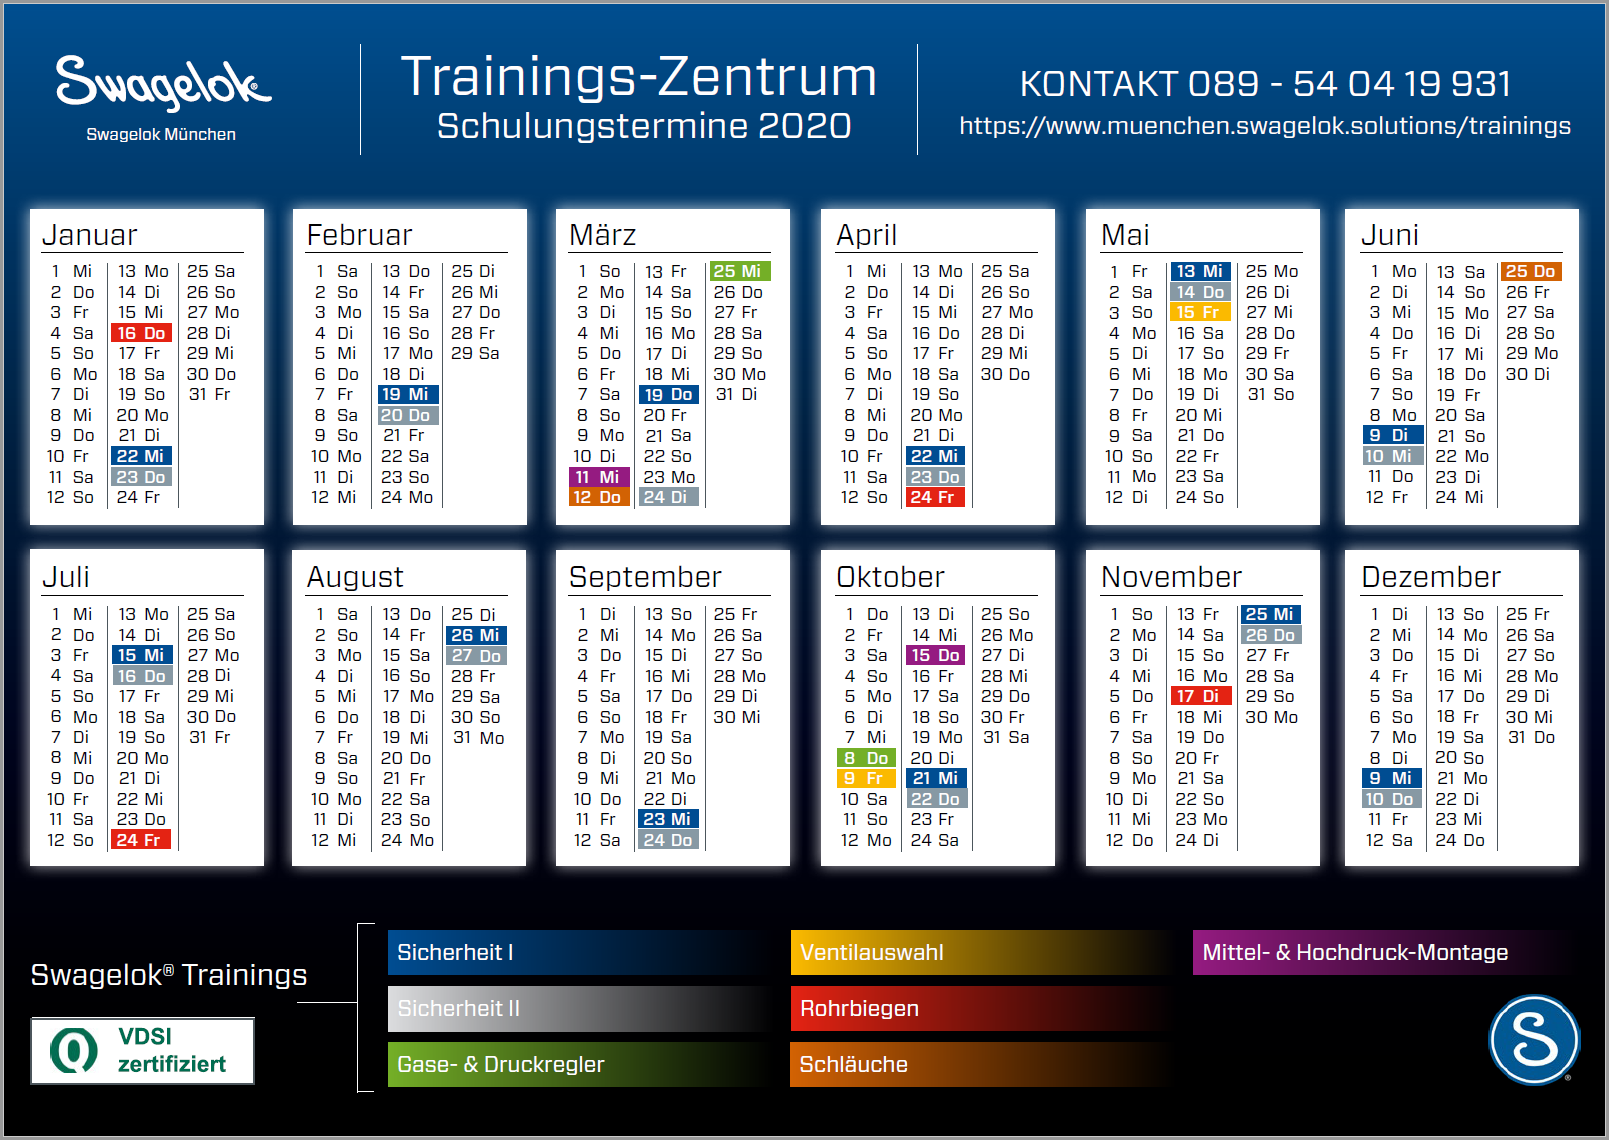 Swagelok Trainings-Zentrum Schulungstermine